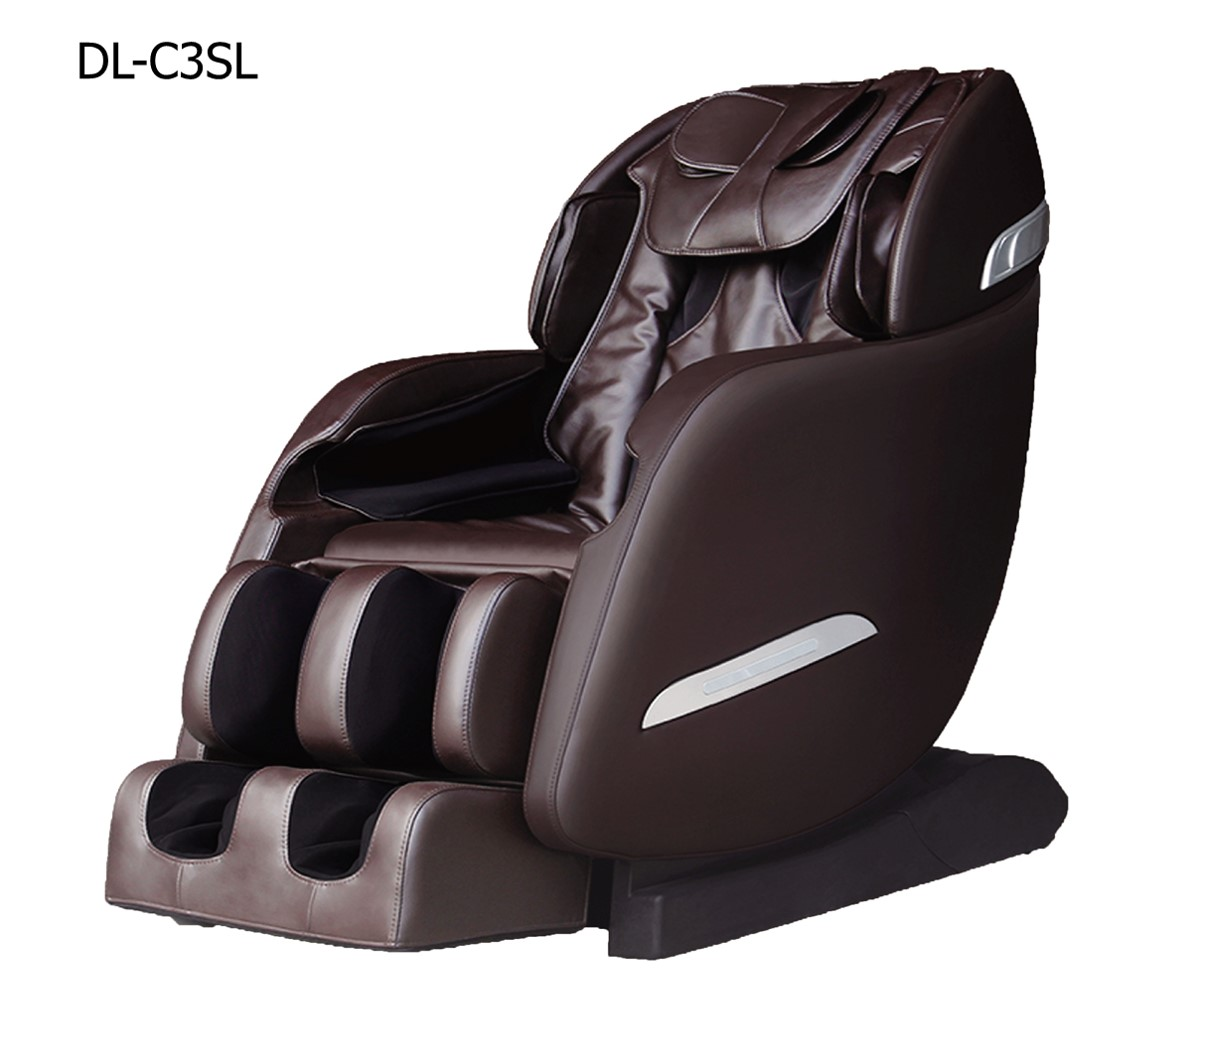 Cheap Deluxe Electric Cushion Home Lift Massage Chair DL-C3SL